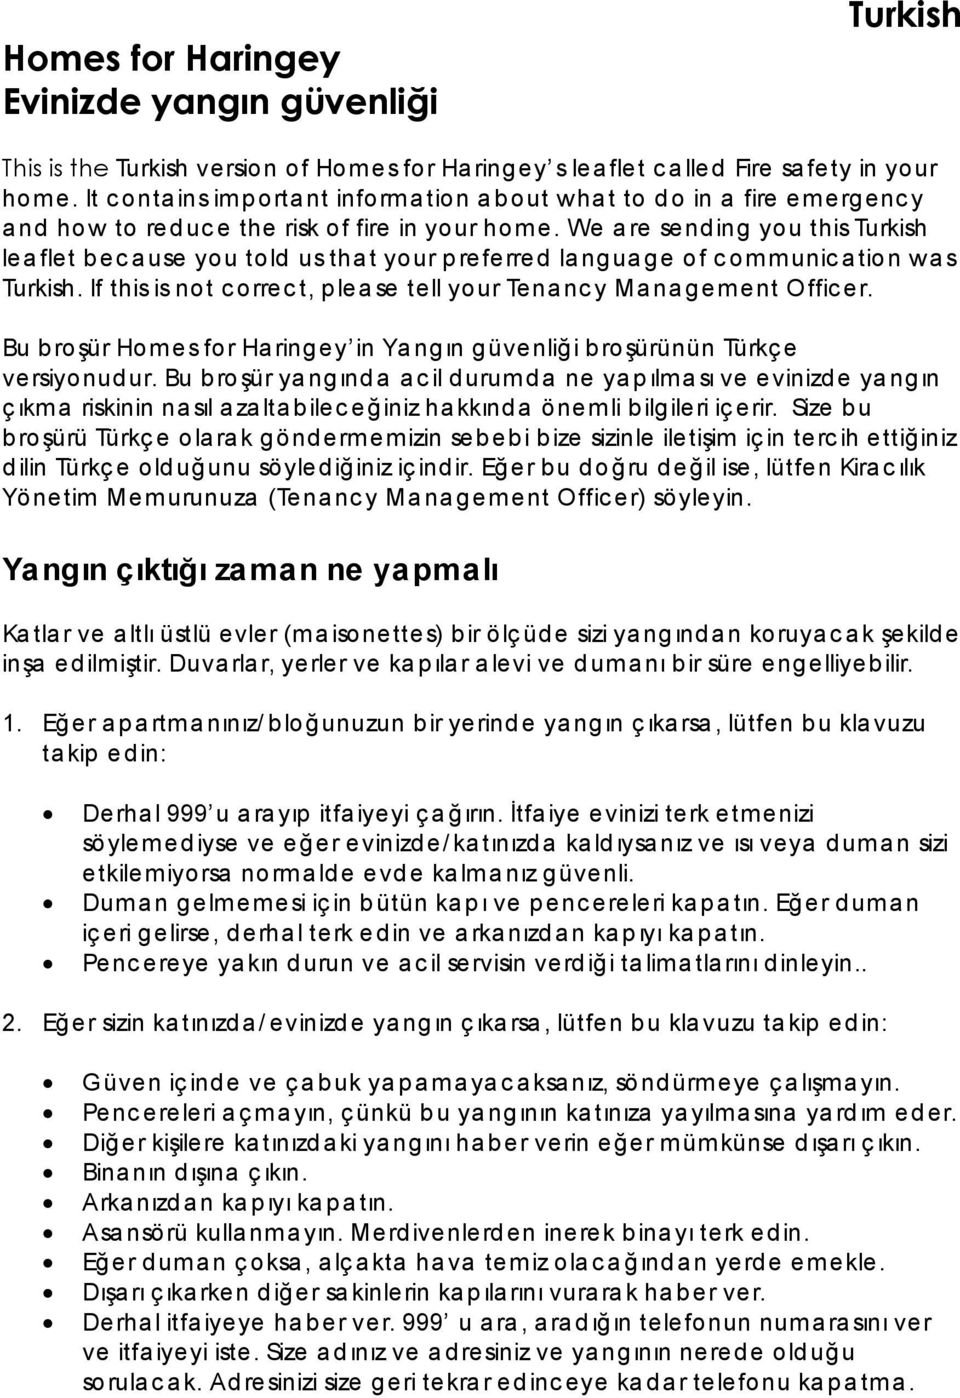 We a re send ing you this Turkish leaflet because you told us that your preferred language of communication was Turkish. If this is not correct, please tell your Tenancy Management Officer.